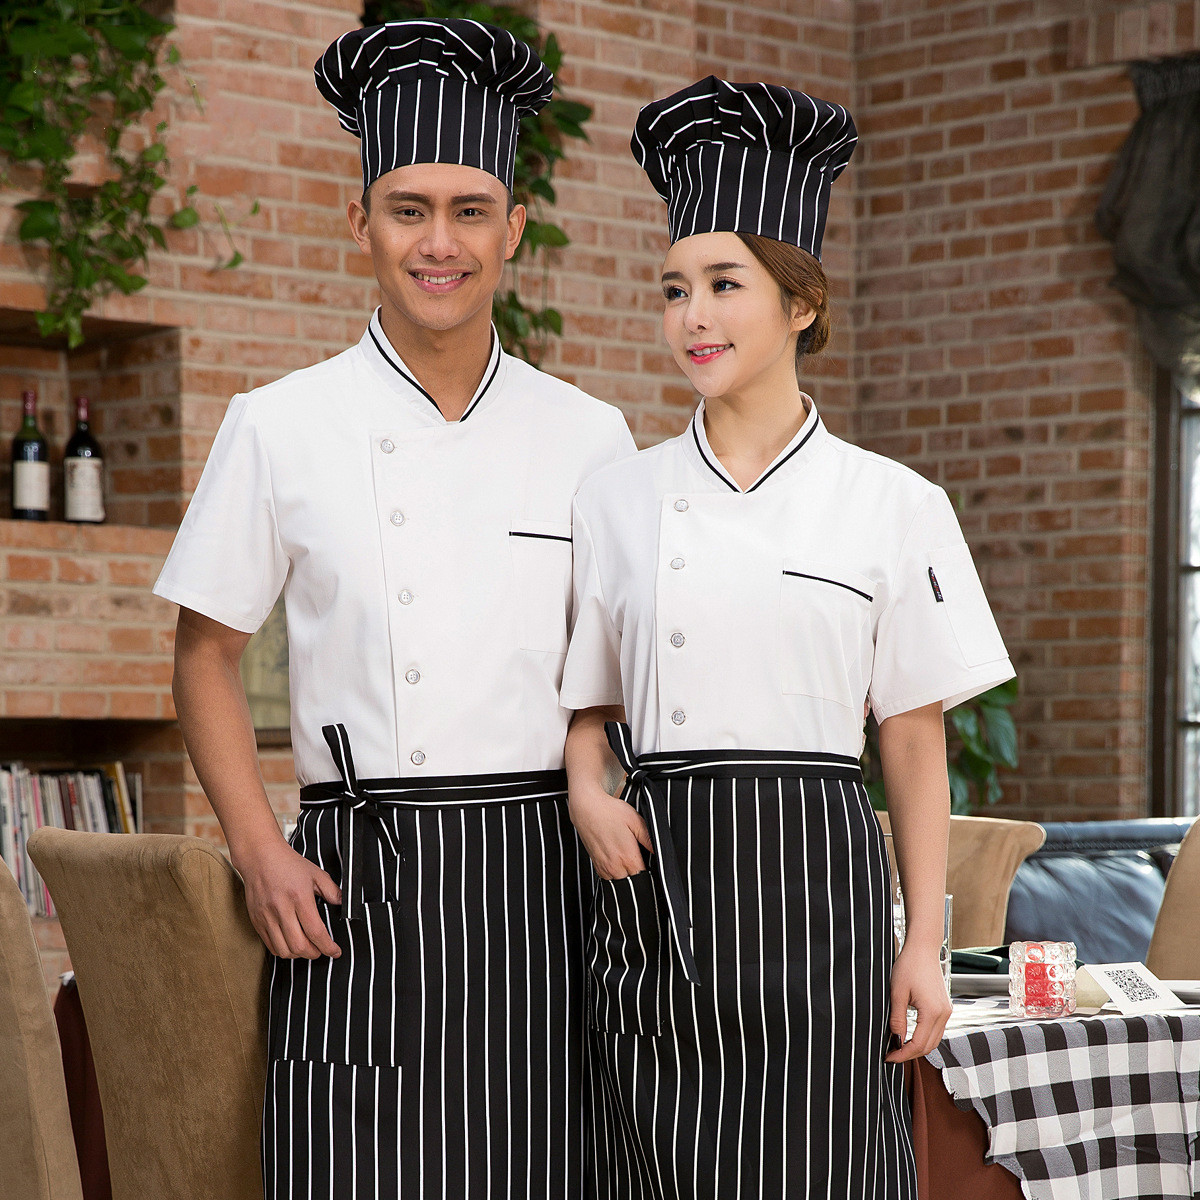 Chef clothes online